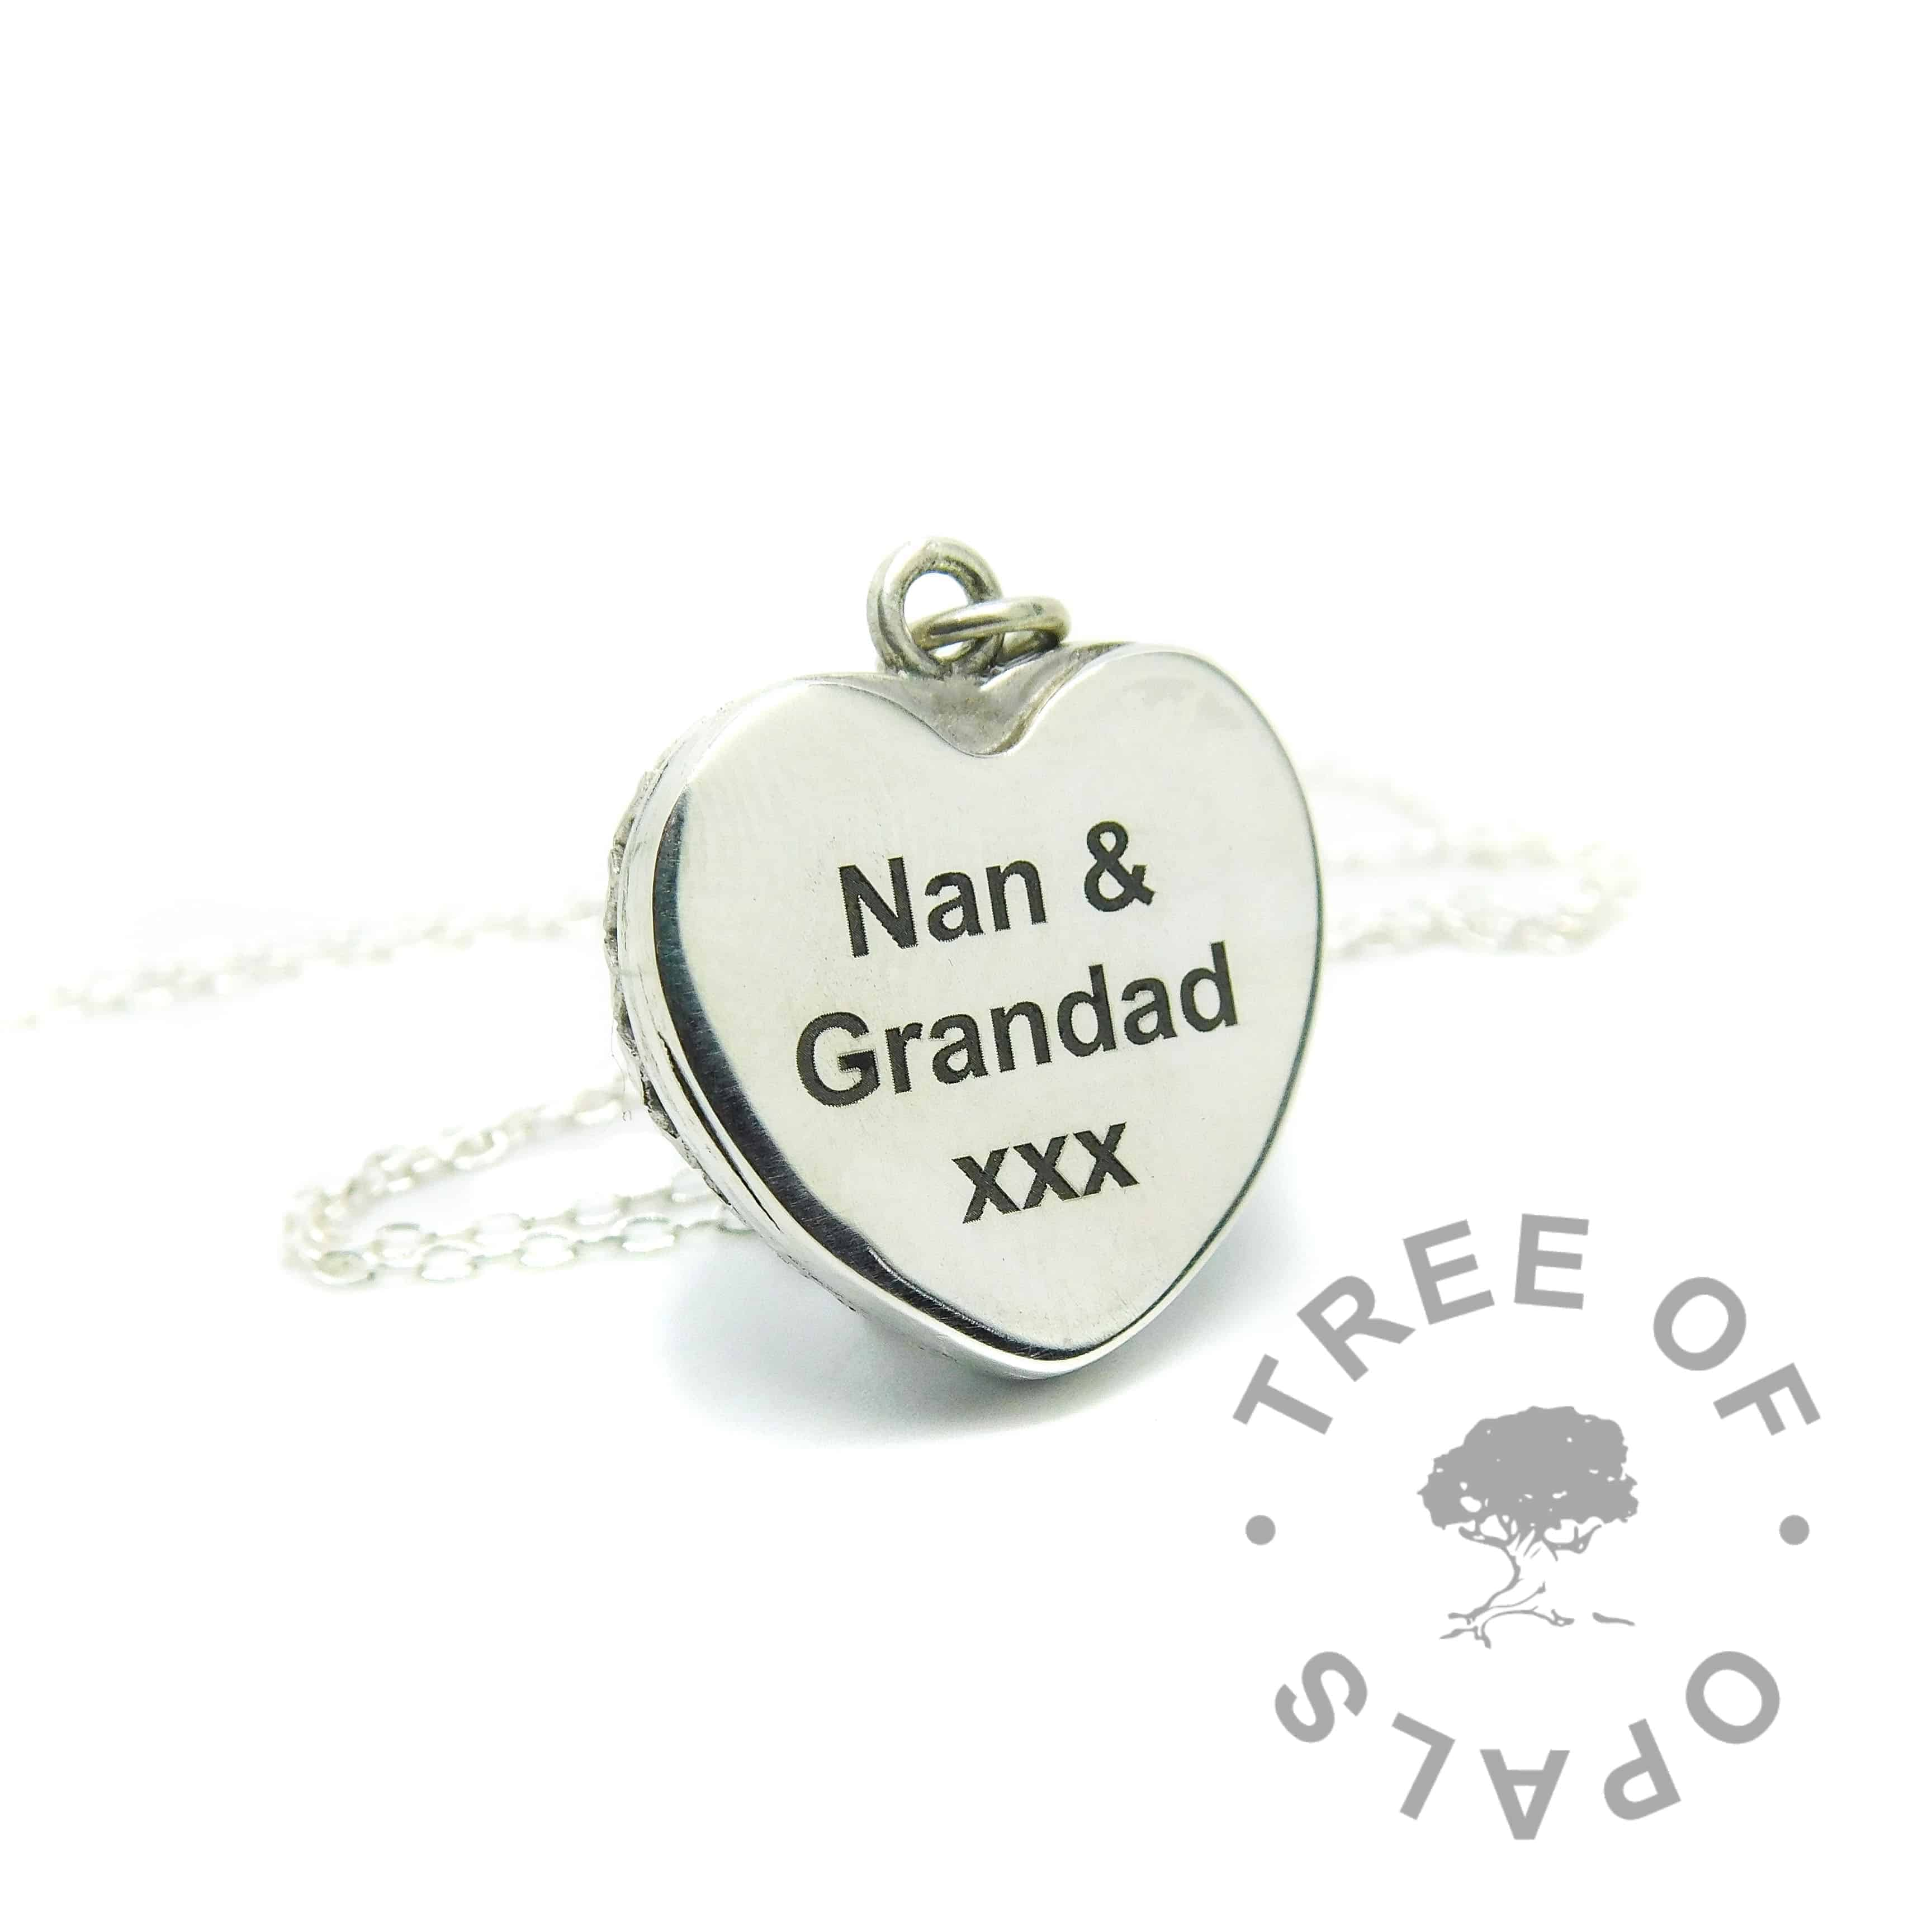 Arial font engraved heart necklace, 20mm sterling silver crown point heart necklace setting. Watermarked copyright Tree of Opals memorial jewellery image